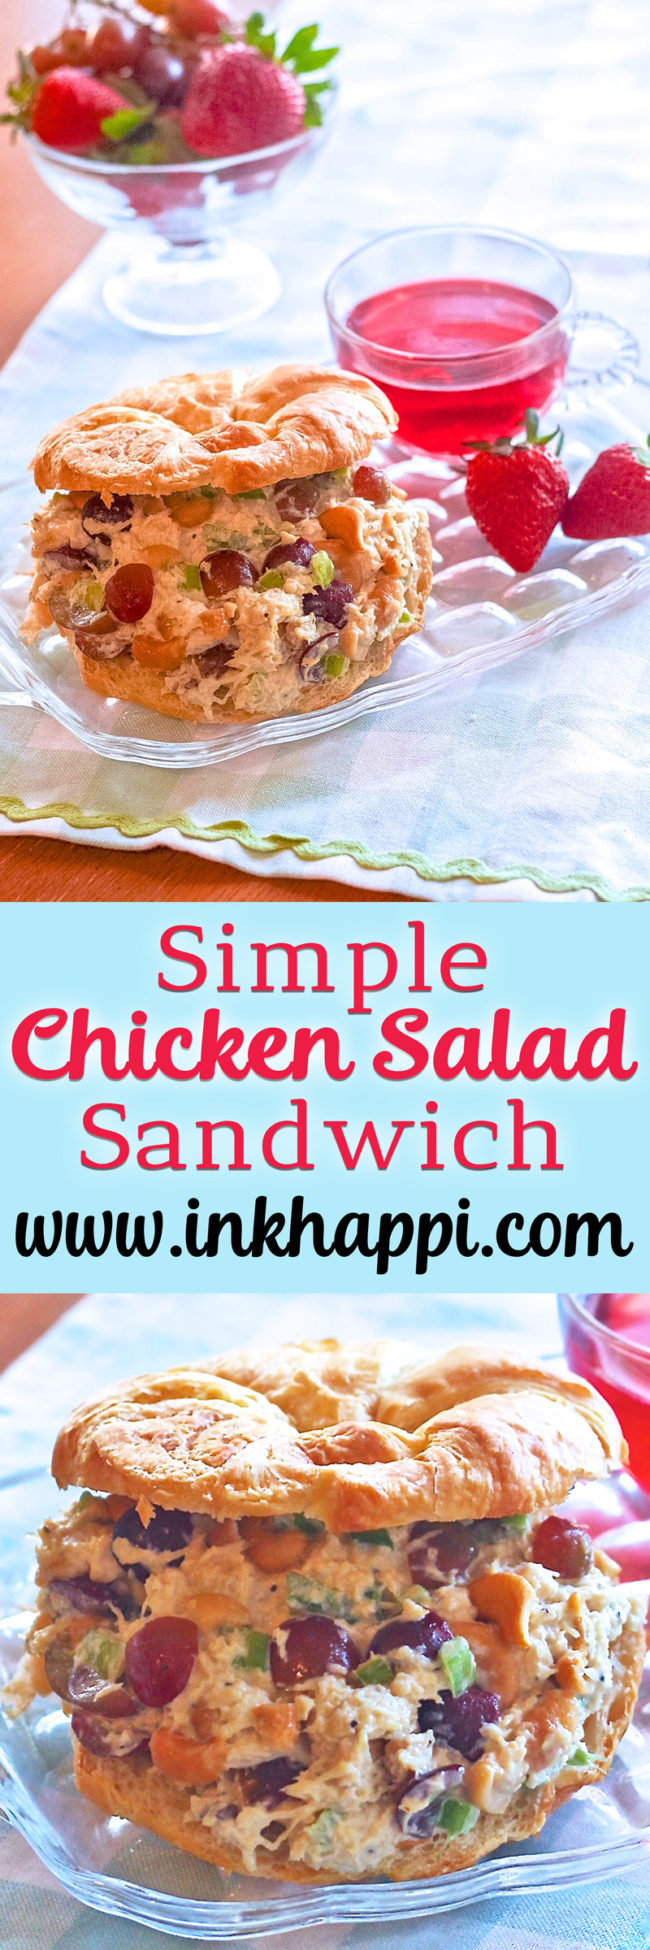 Its so yummy I die! Very simple and easy chicken salad sandwich